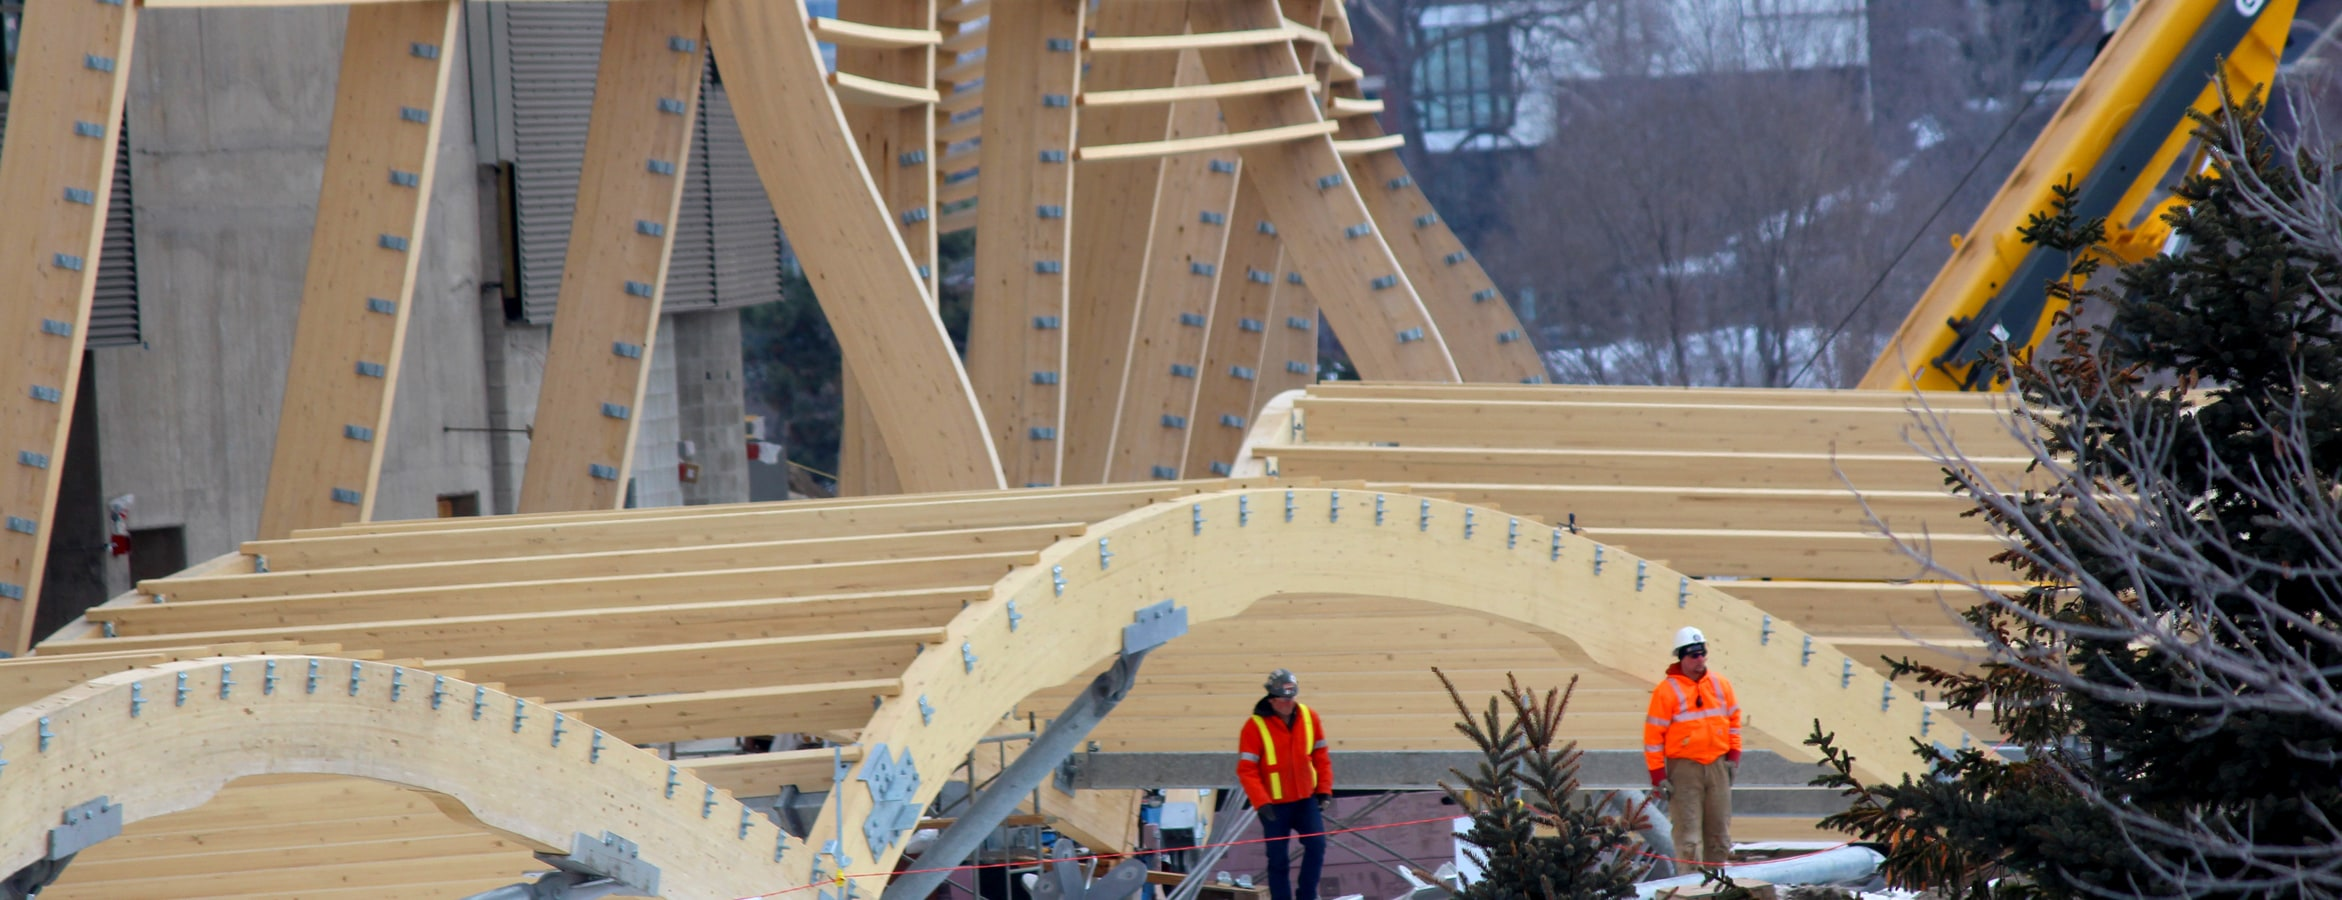 Mass Timber Connections: Aesthetics vs. Practicality